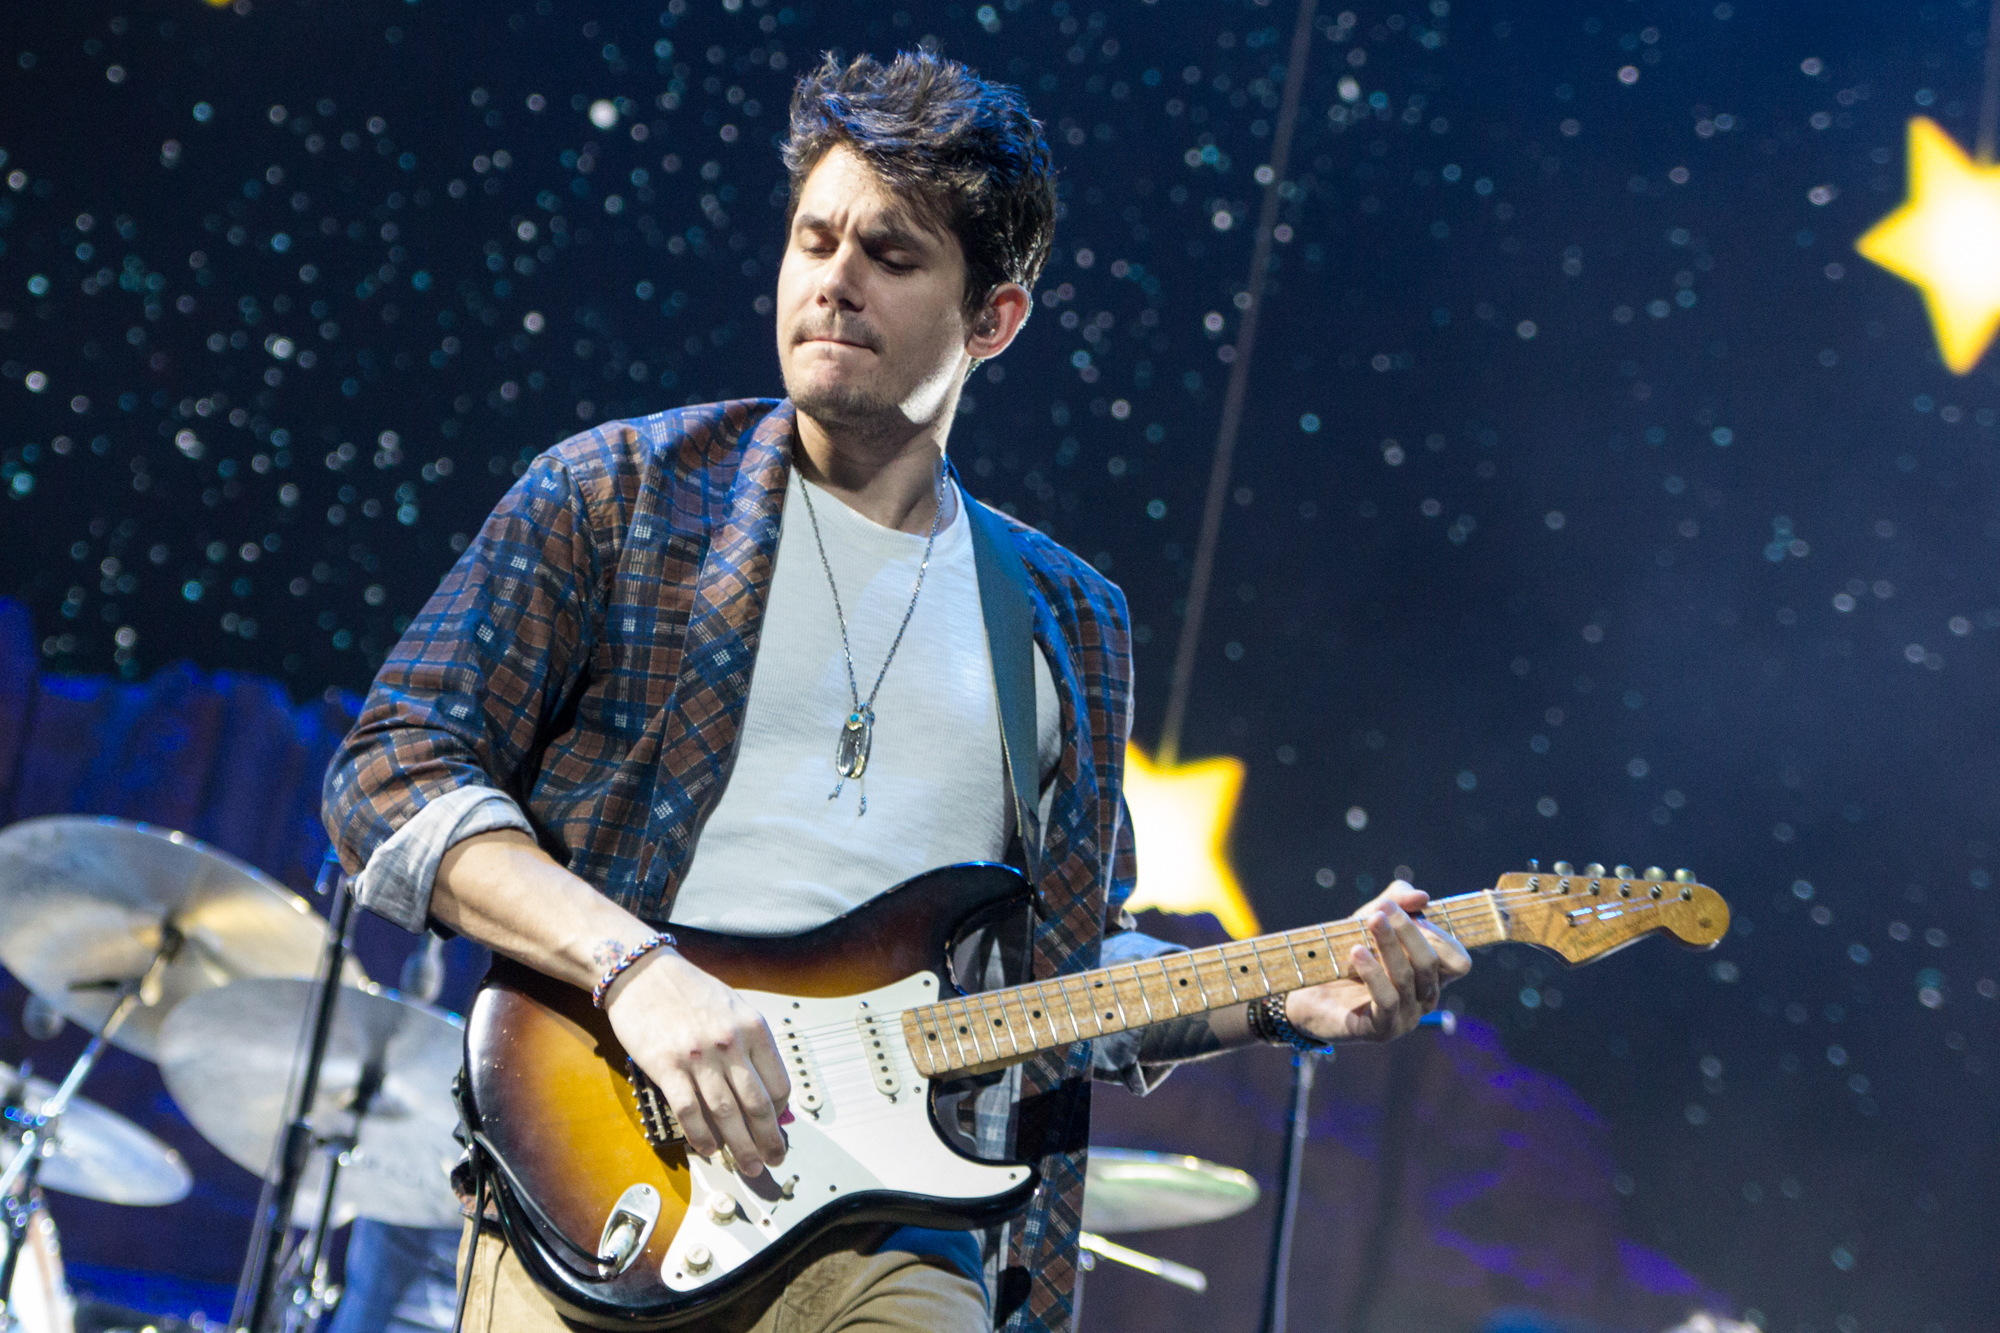 John Mayer Wallpapers High Quality Download Free